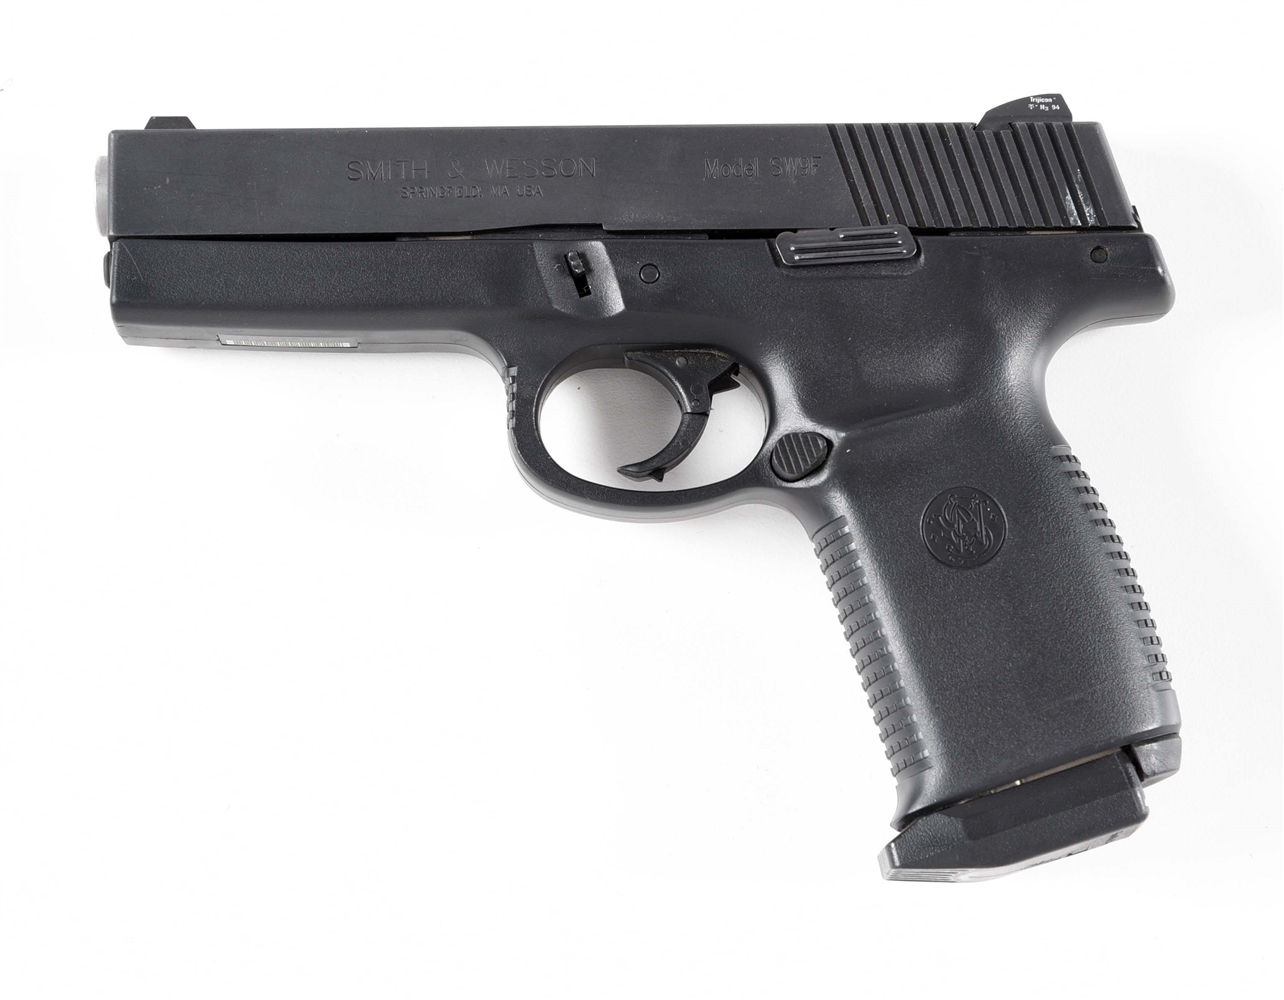 (M) SMITH & WESSON SW9F SEMI-AUTOMATIC PISTOL.